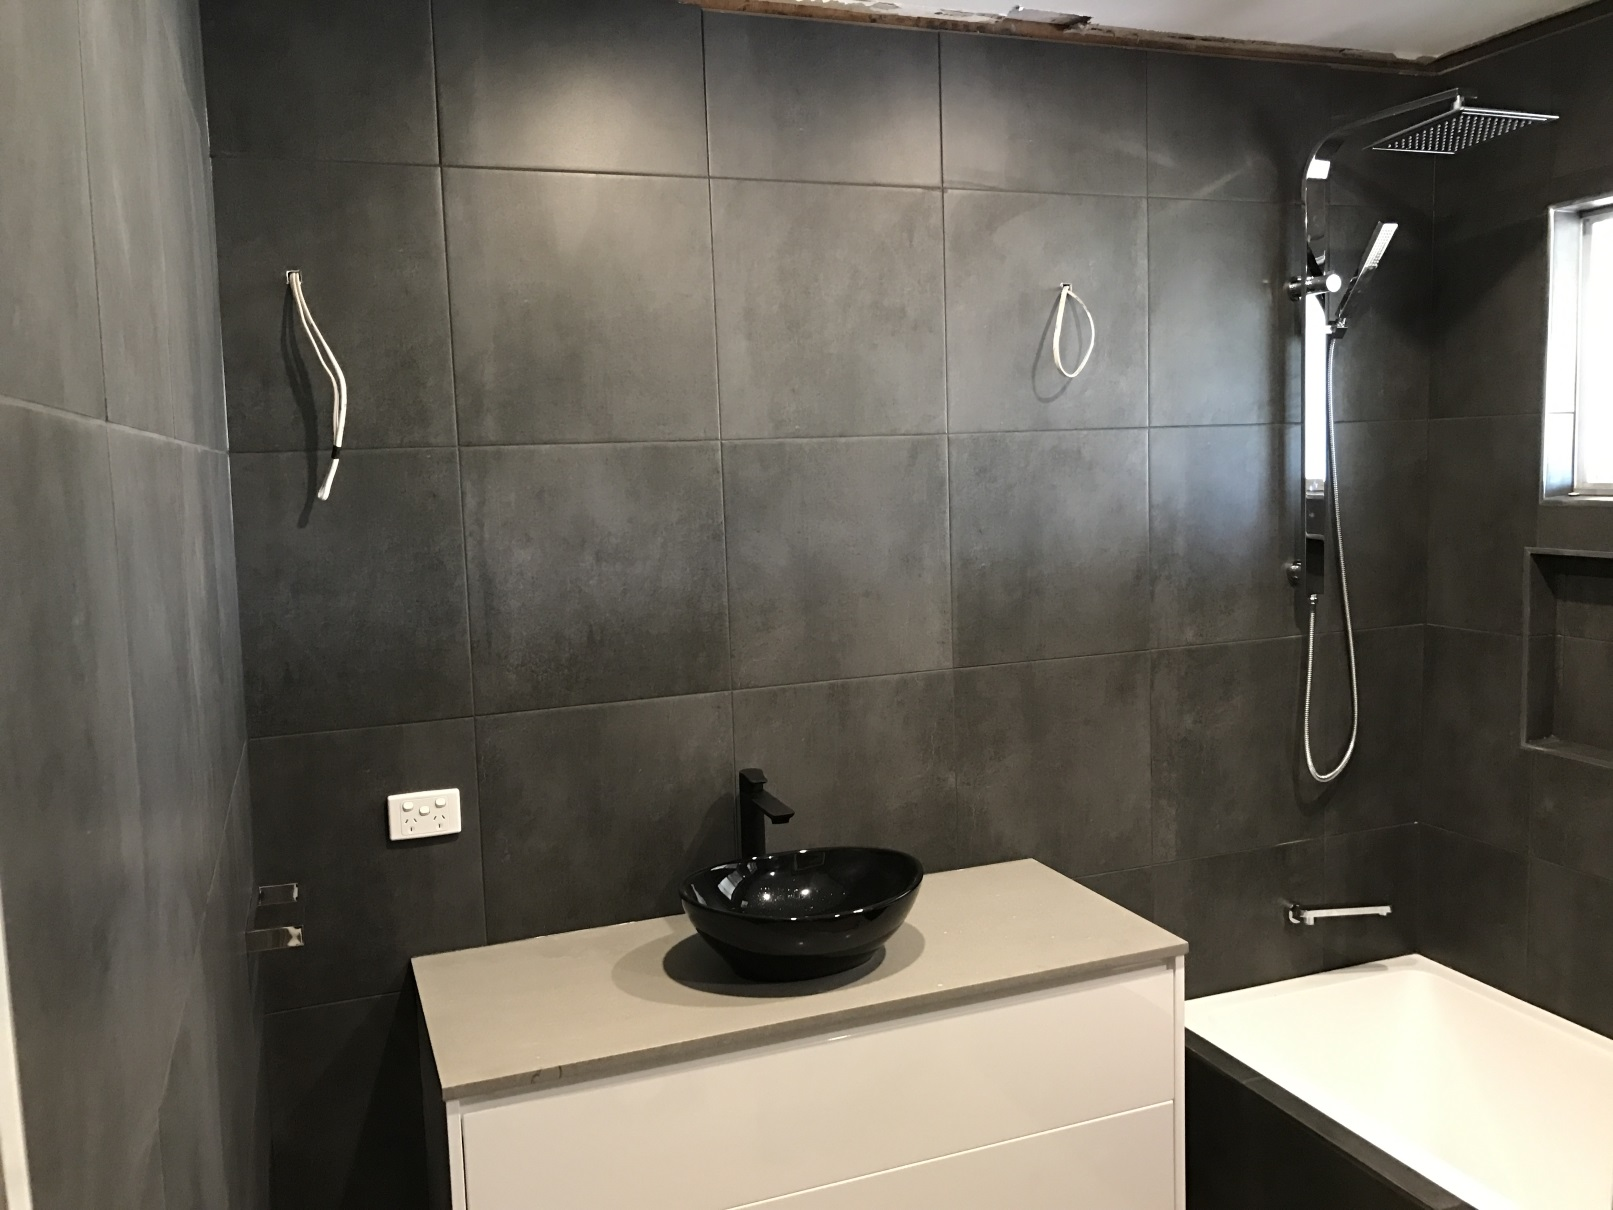 Arana hills brisbane bathroom renovations 5 1 bathroom for Lifestyle bathroom renovations